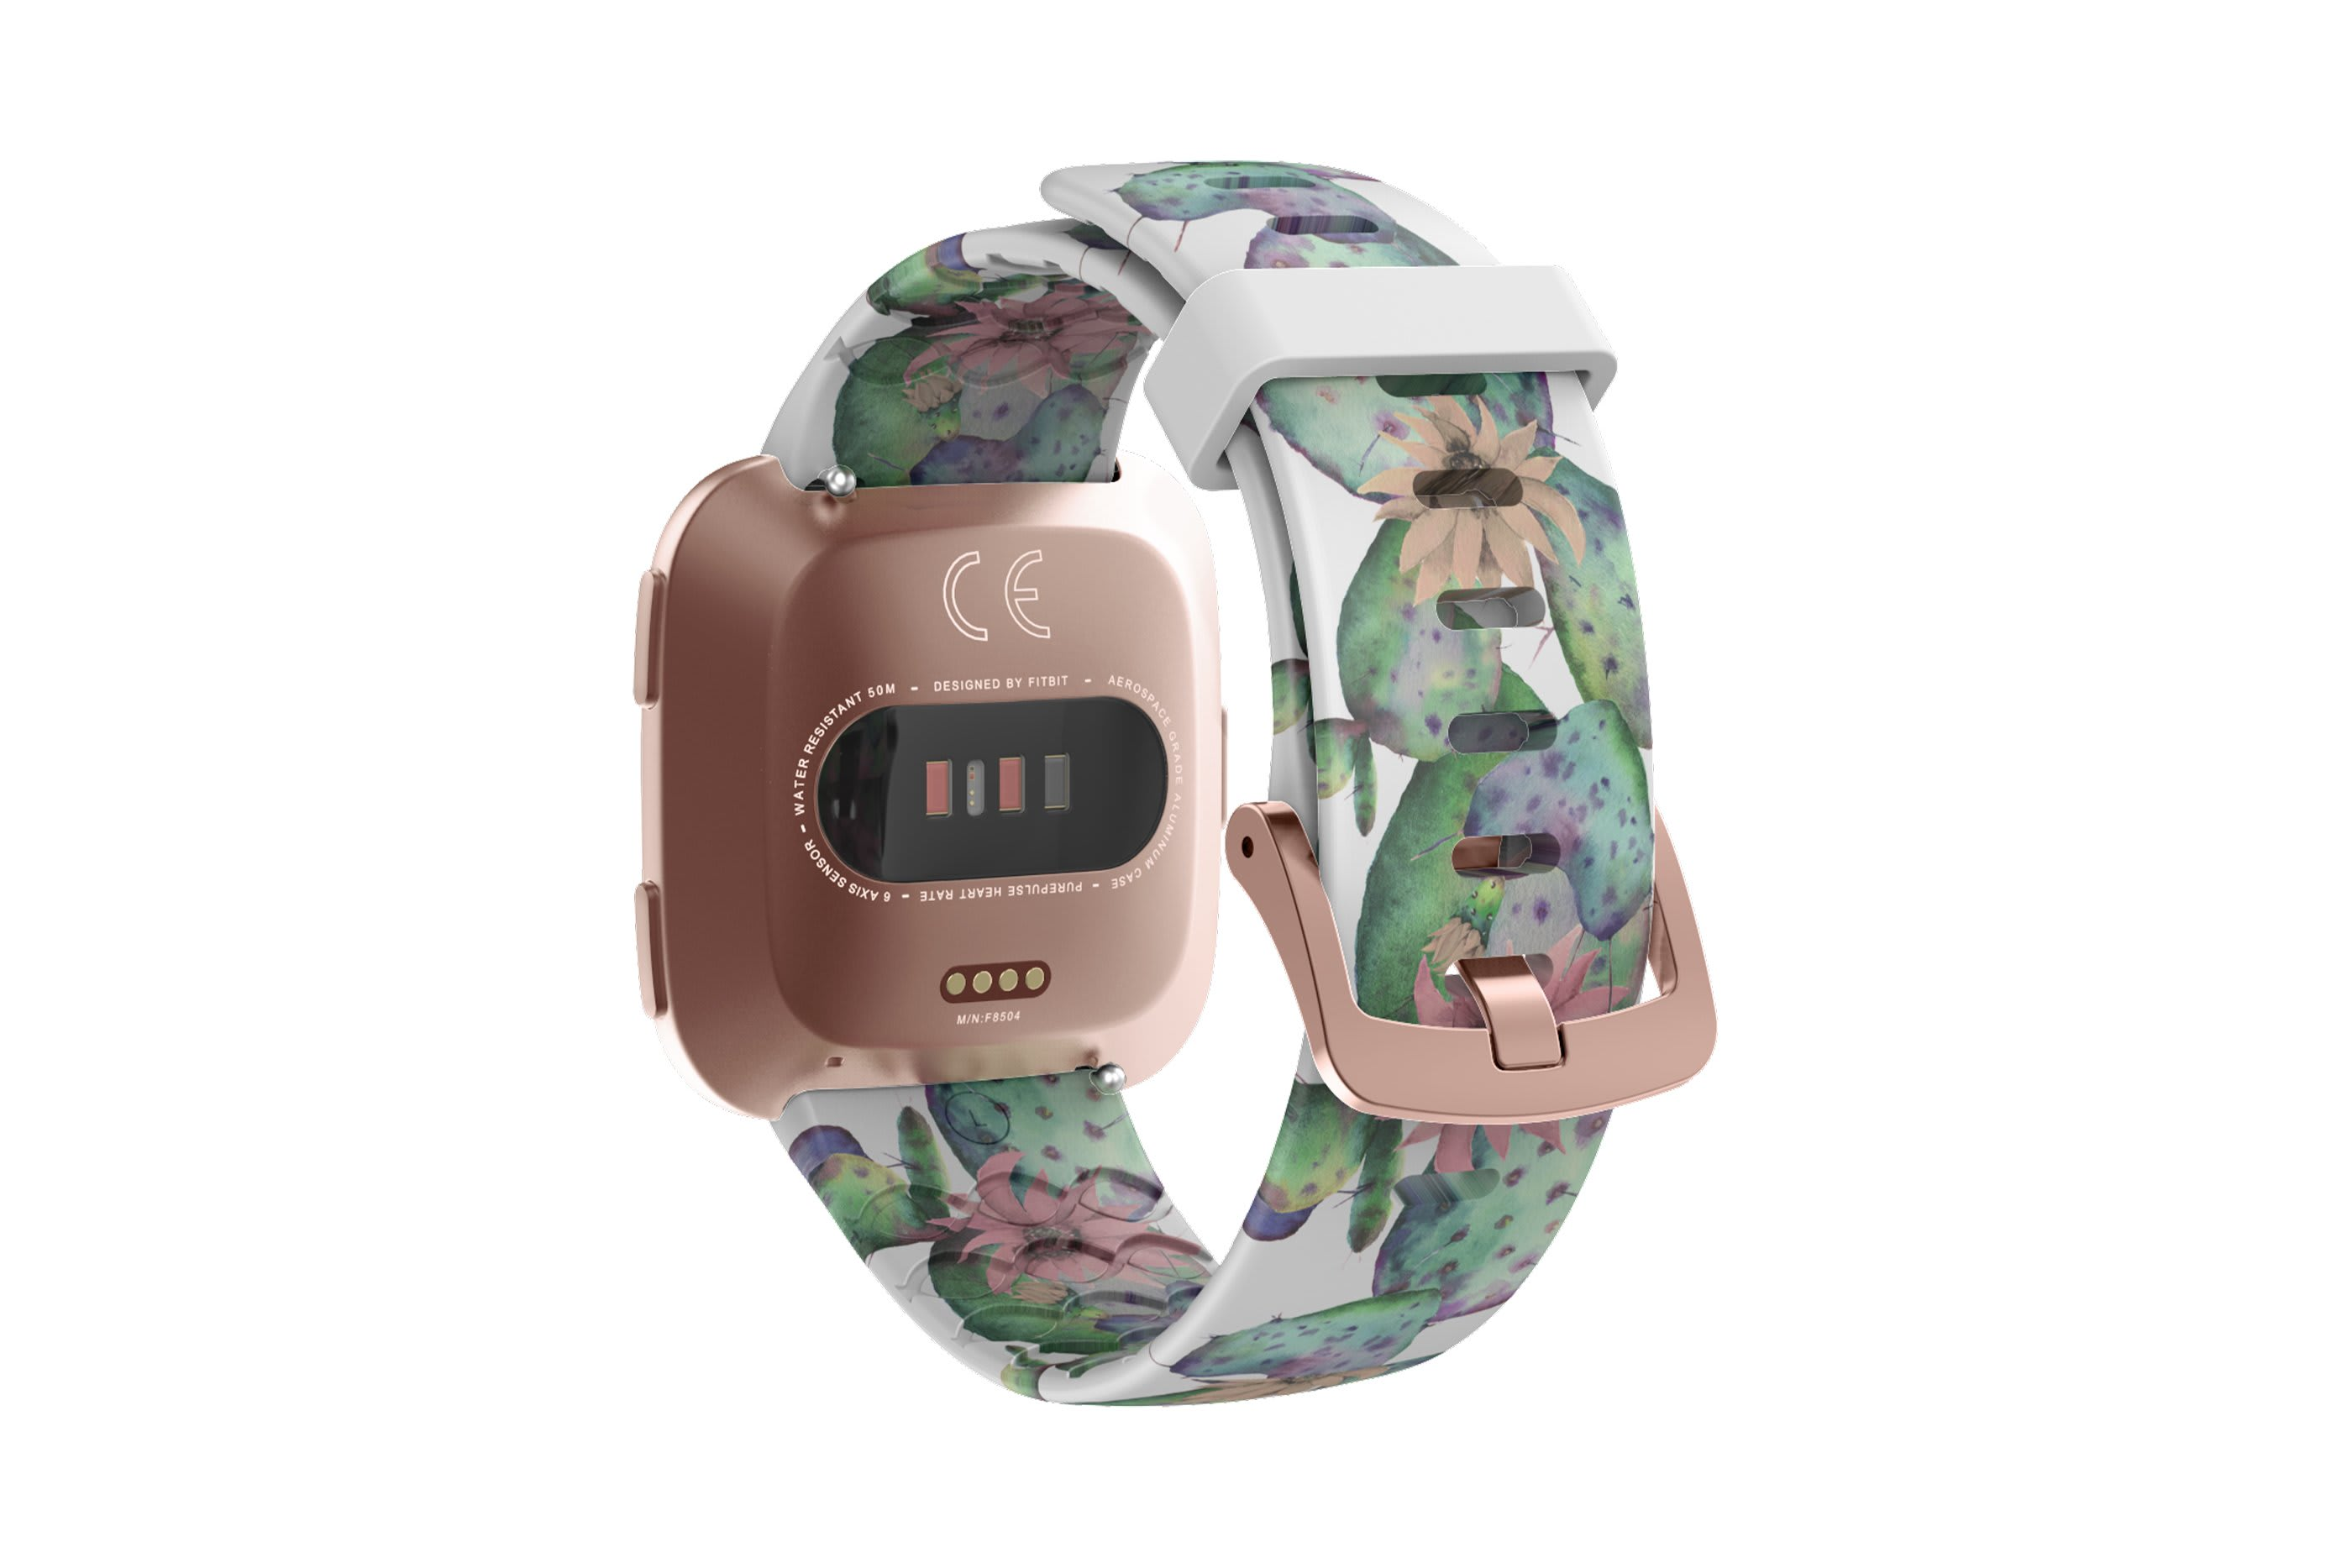 Cactus Bloom fitbit versa watch band with rose gold hardware viewed from top down